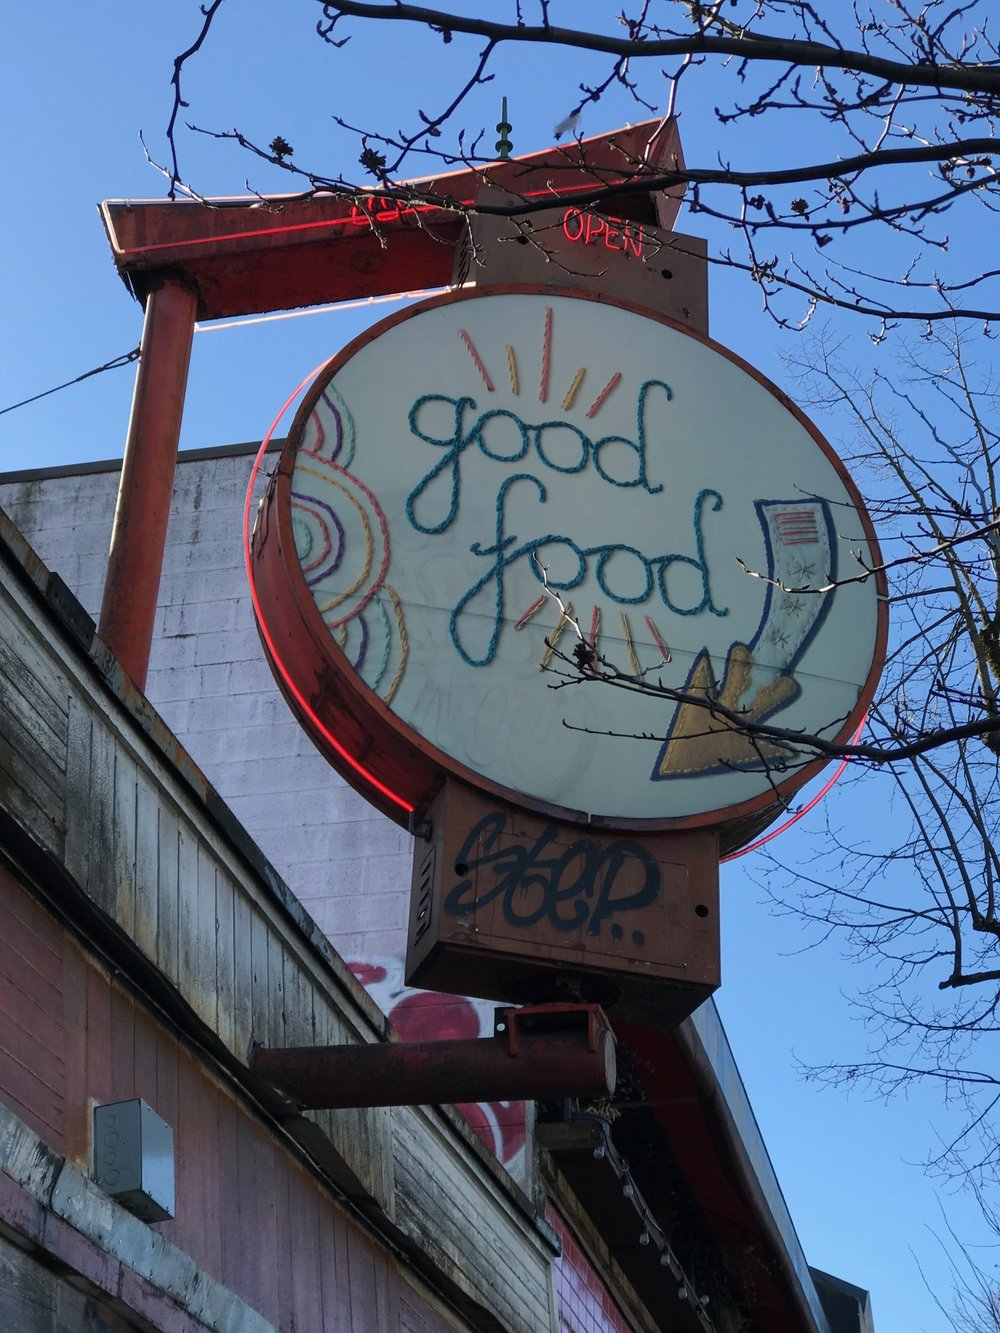 There are lots of good food places…